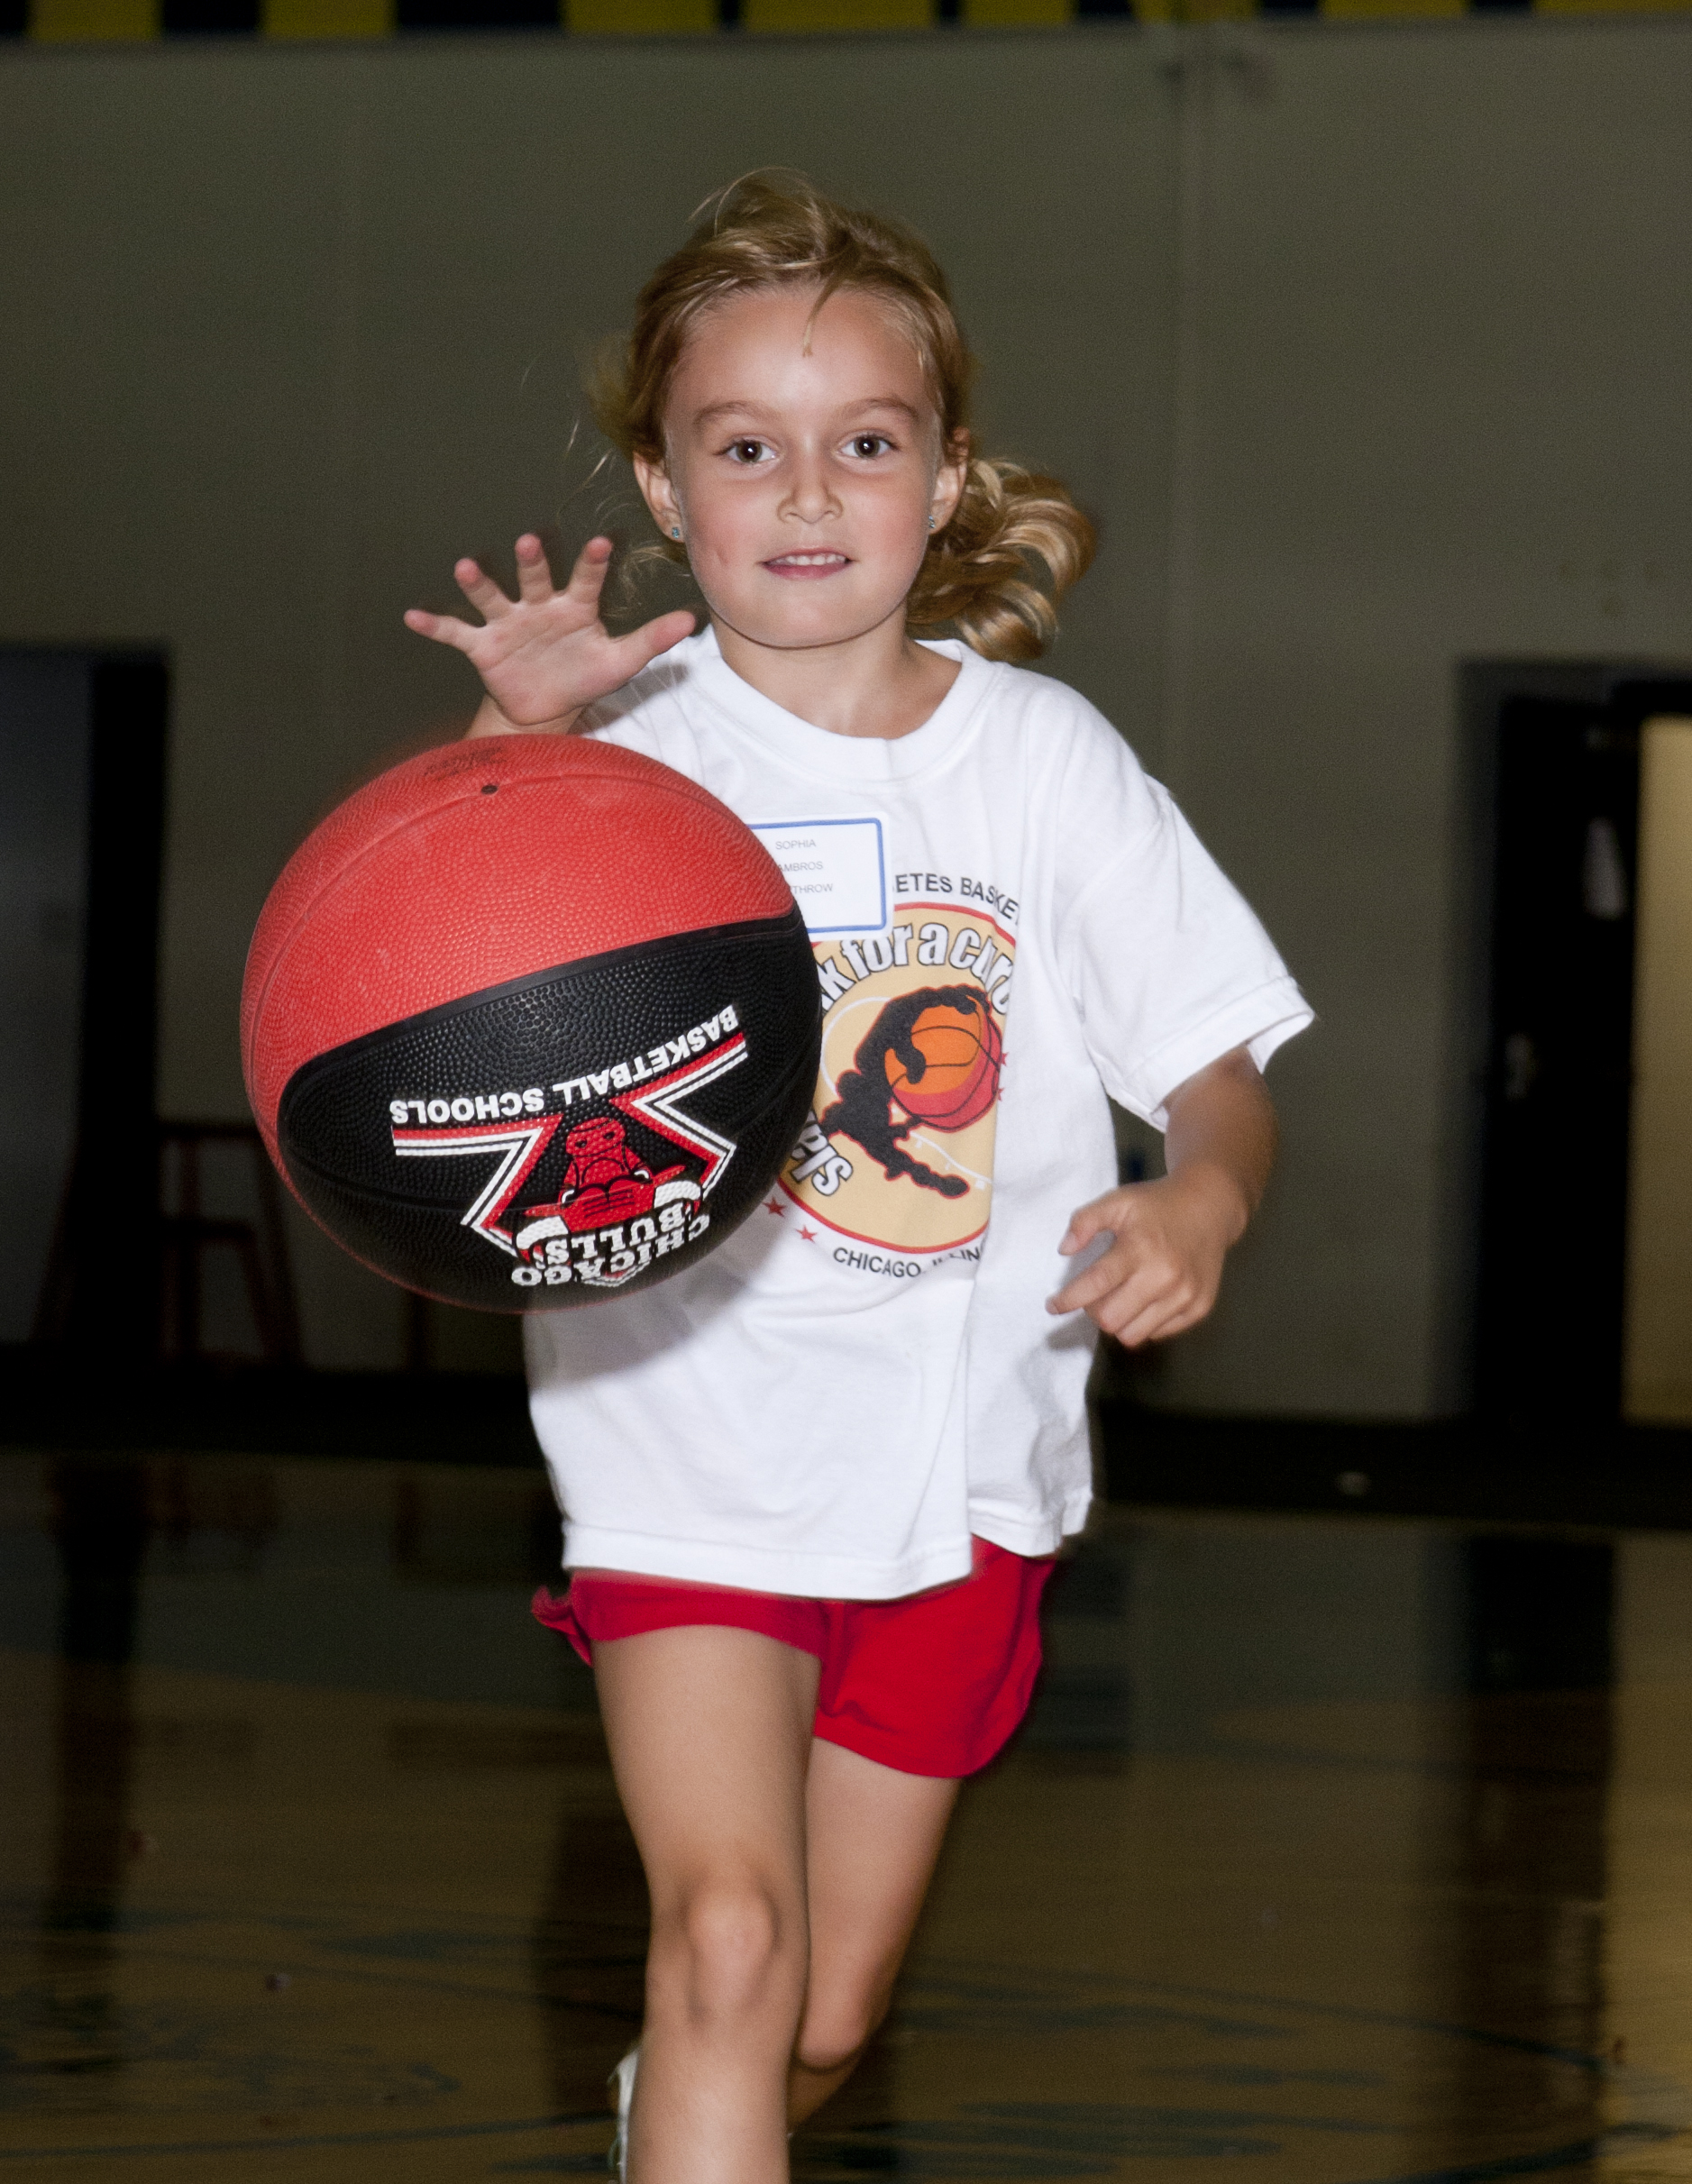 6 year old Sophia at Slam Dunk Camp